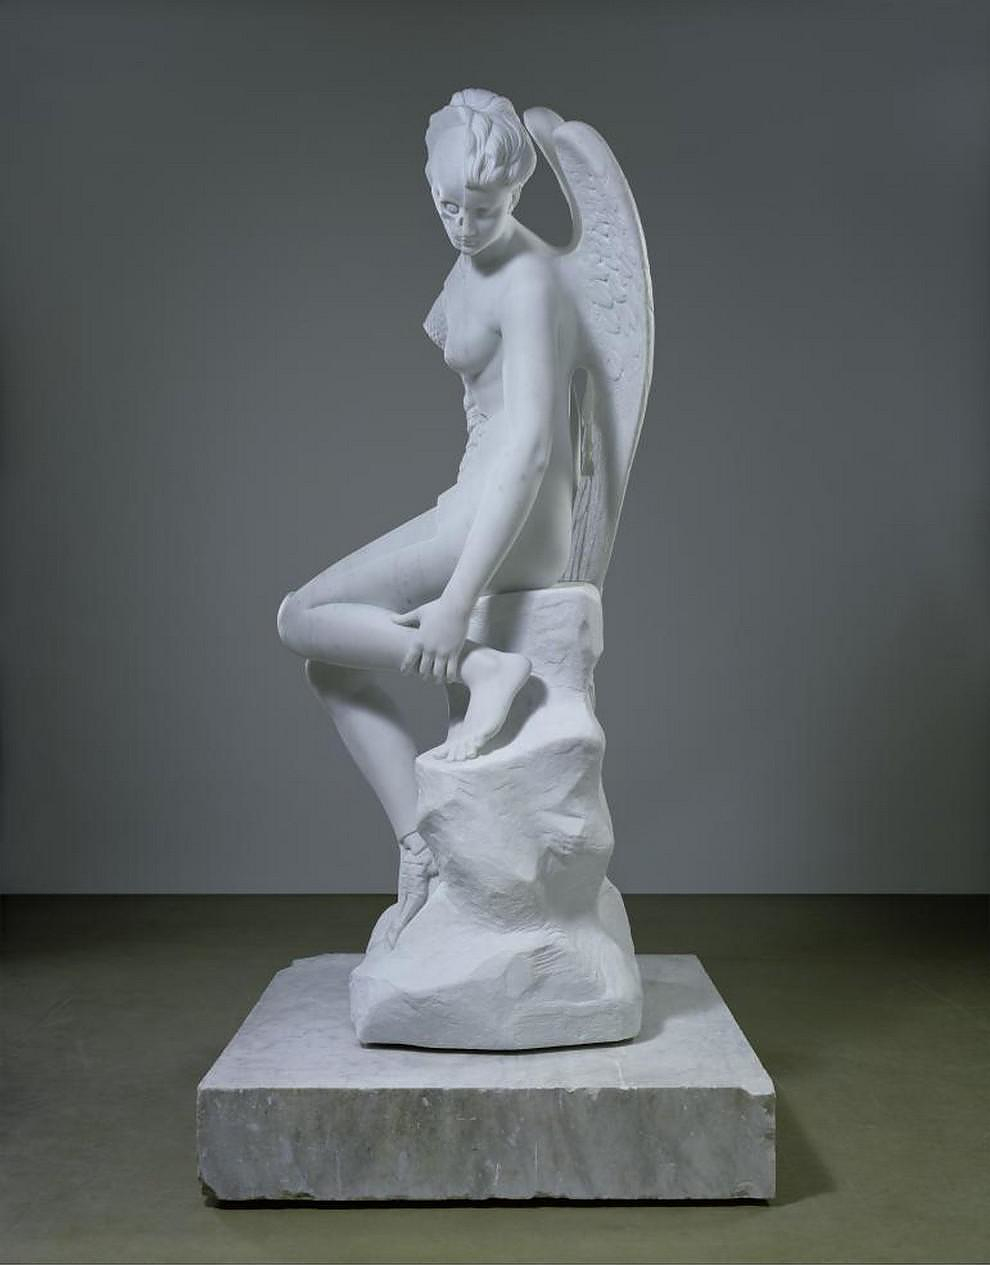 The Anatomy of an Angel by Damien Hirst.